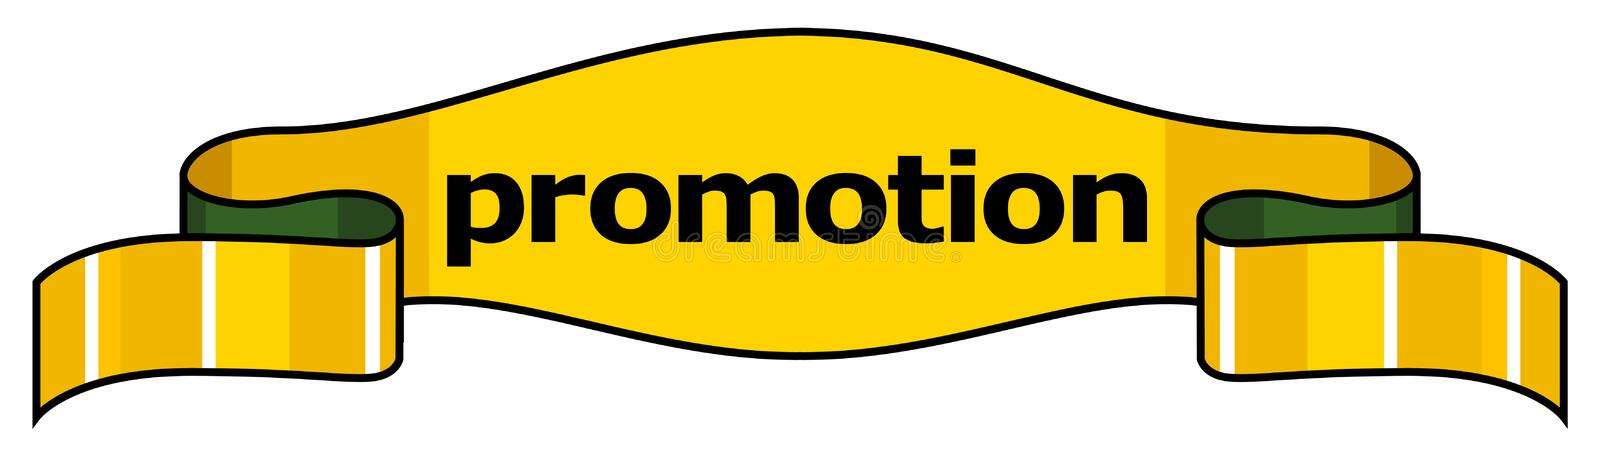 Download Promotion Yellow Title Ribbon Stock Illustration - Image: 2901387